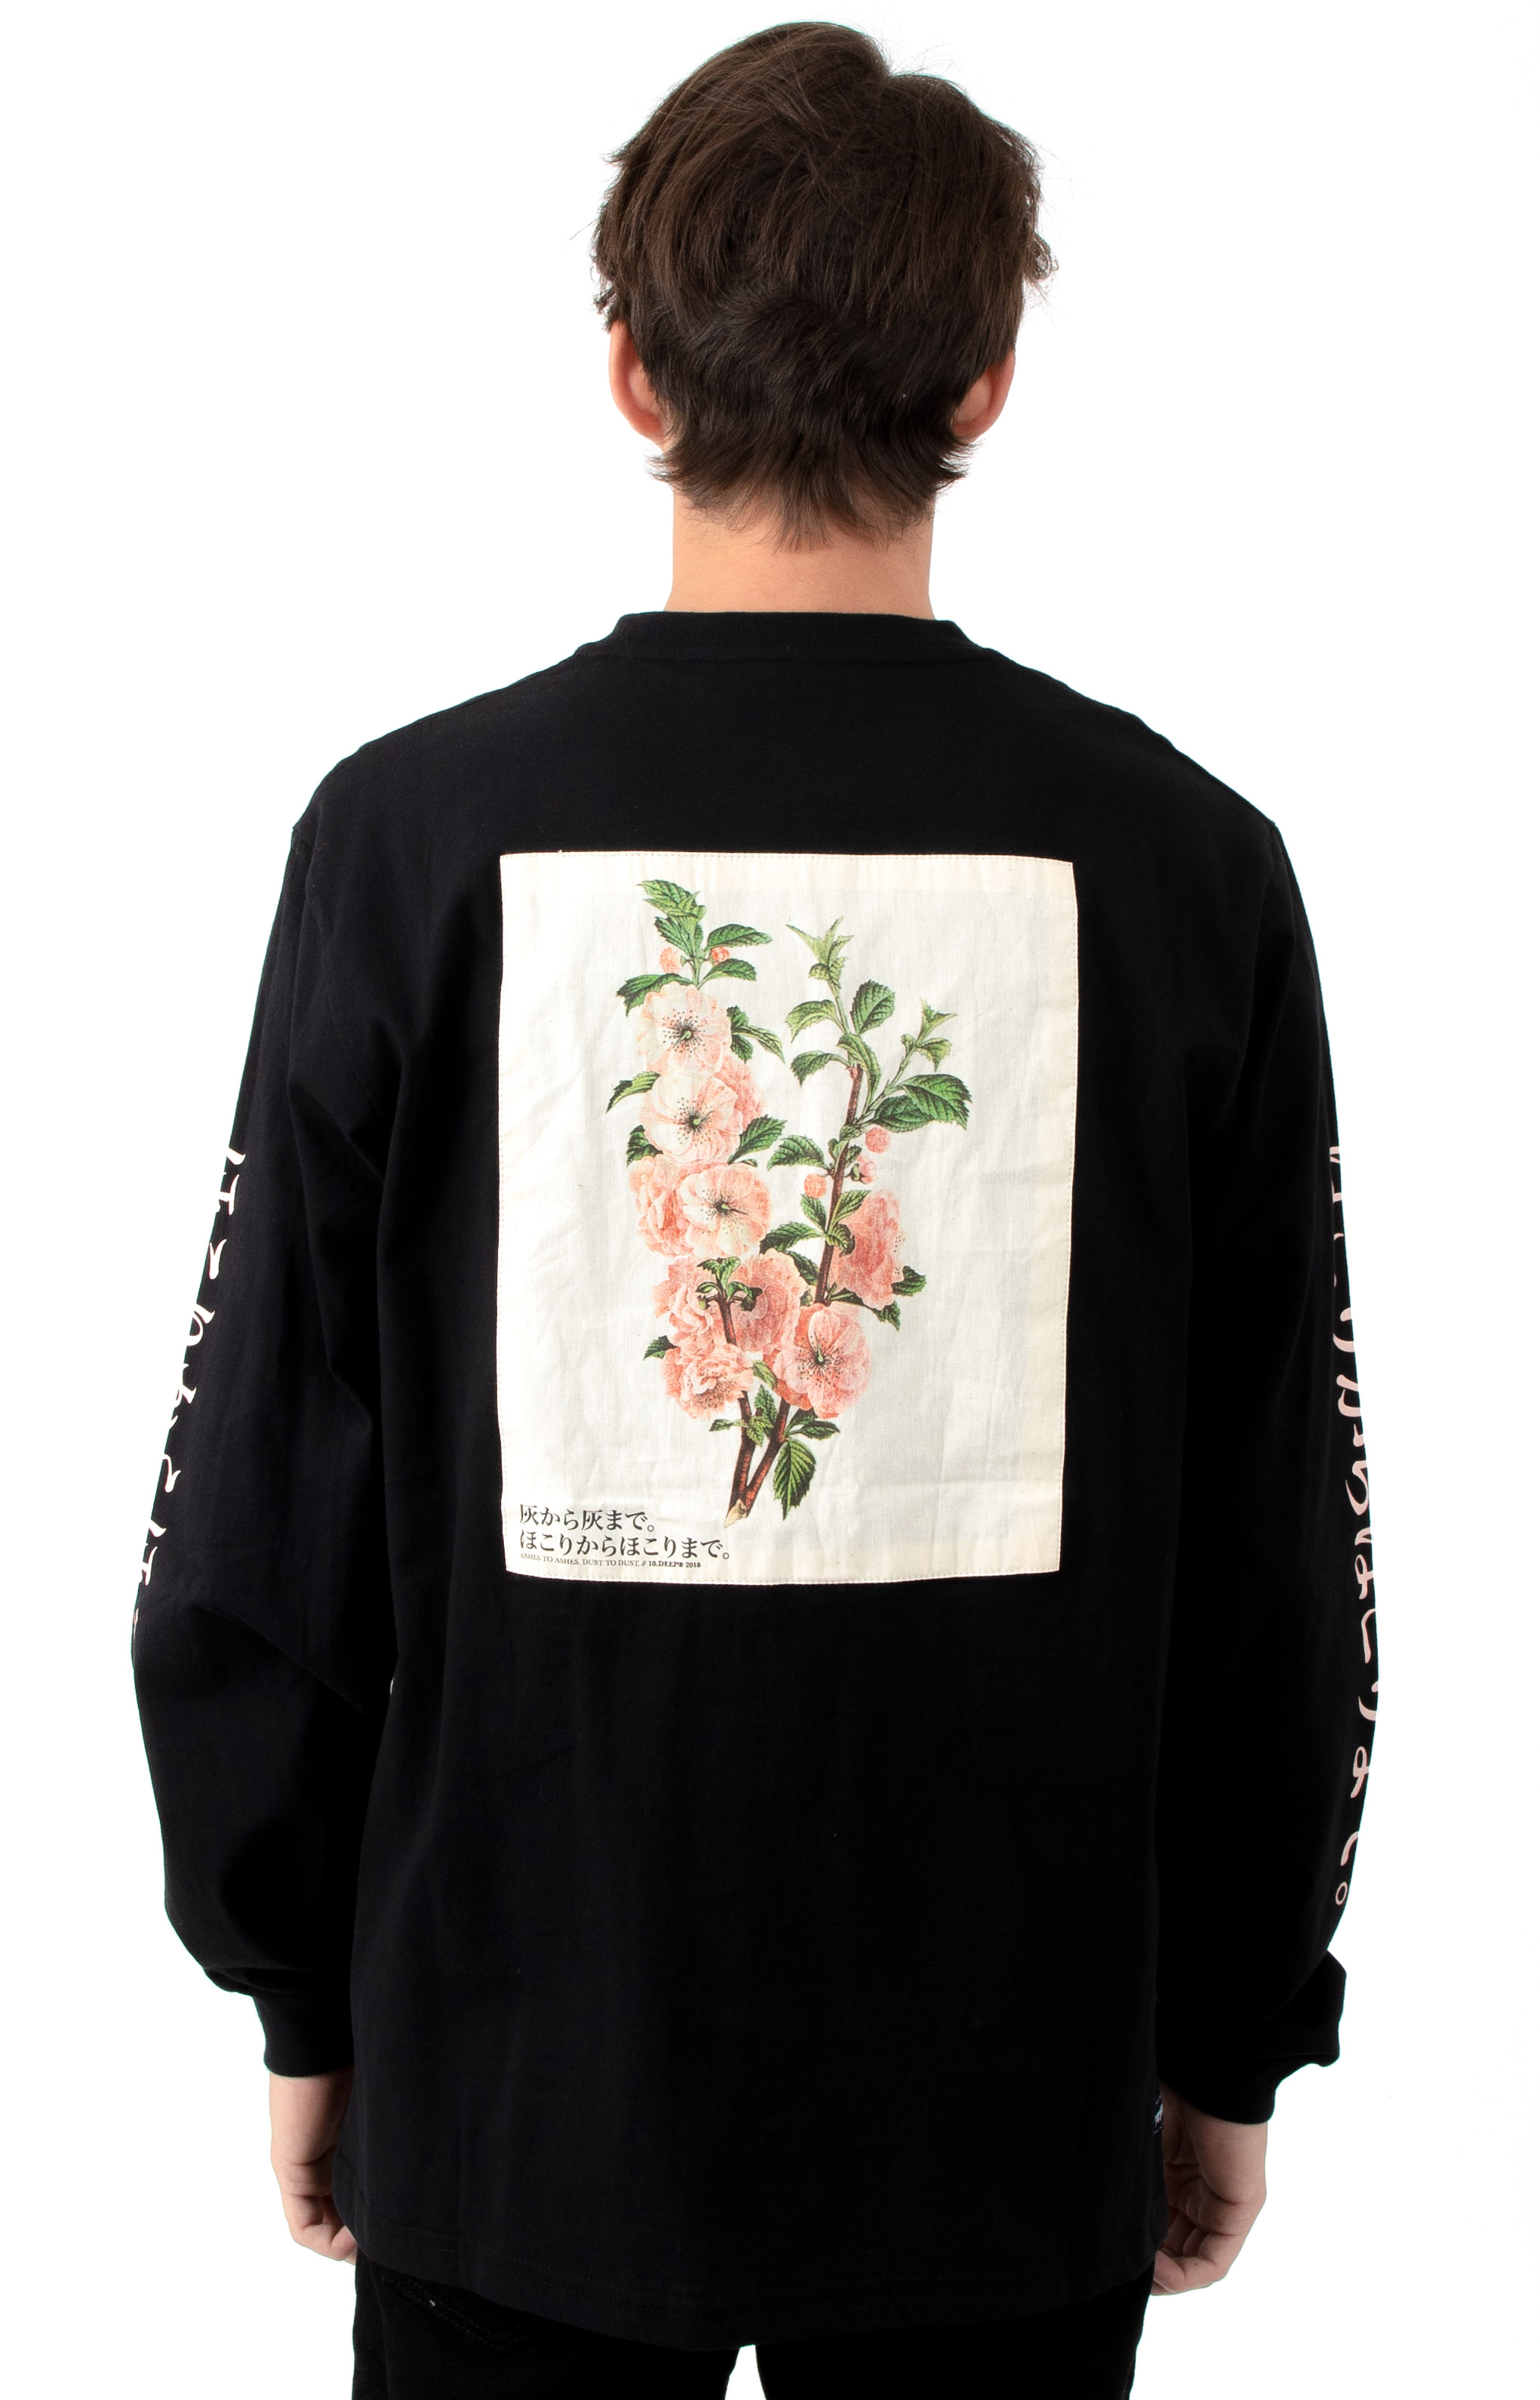 Ashes To Ashes L/S Shirt - Black